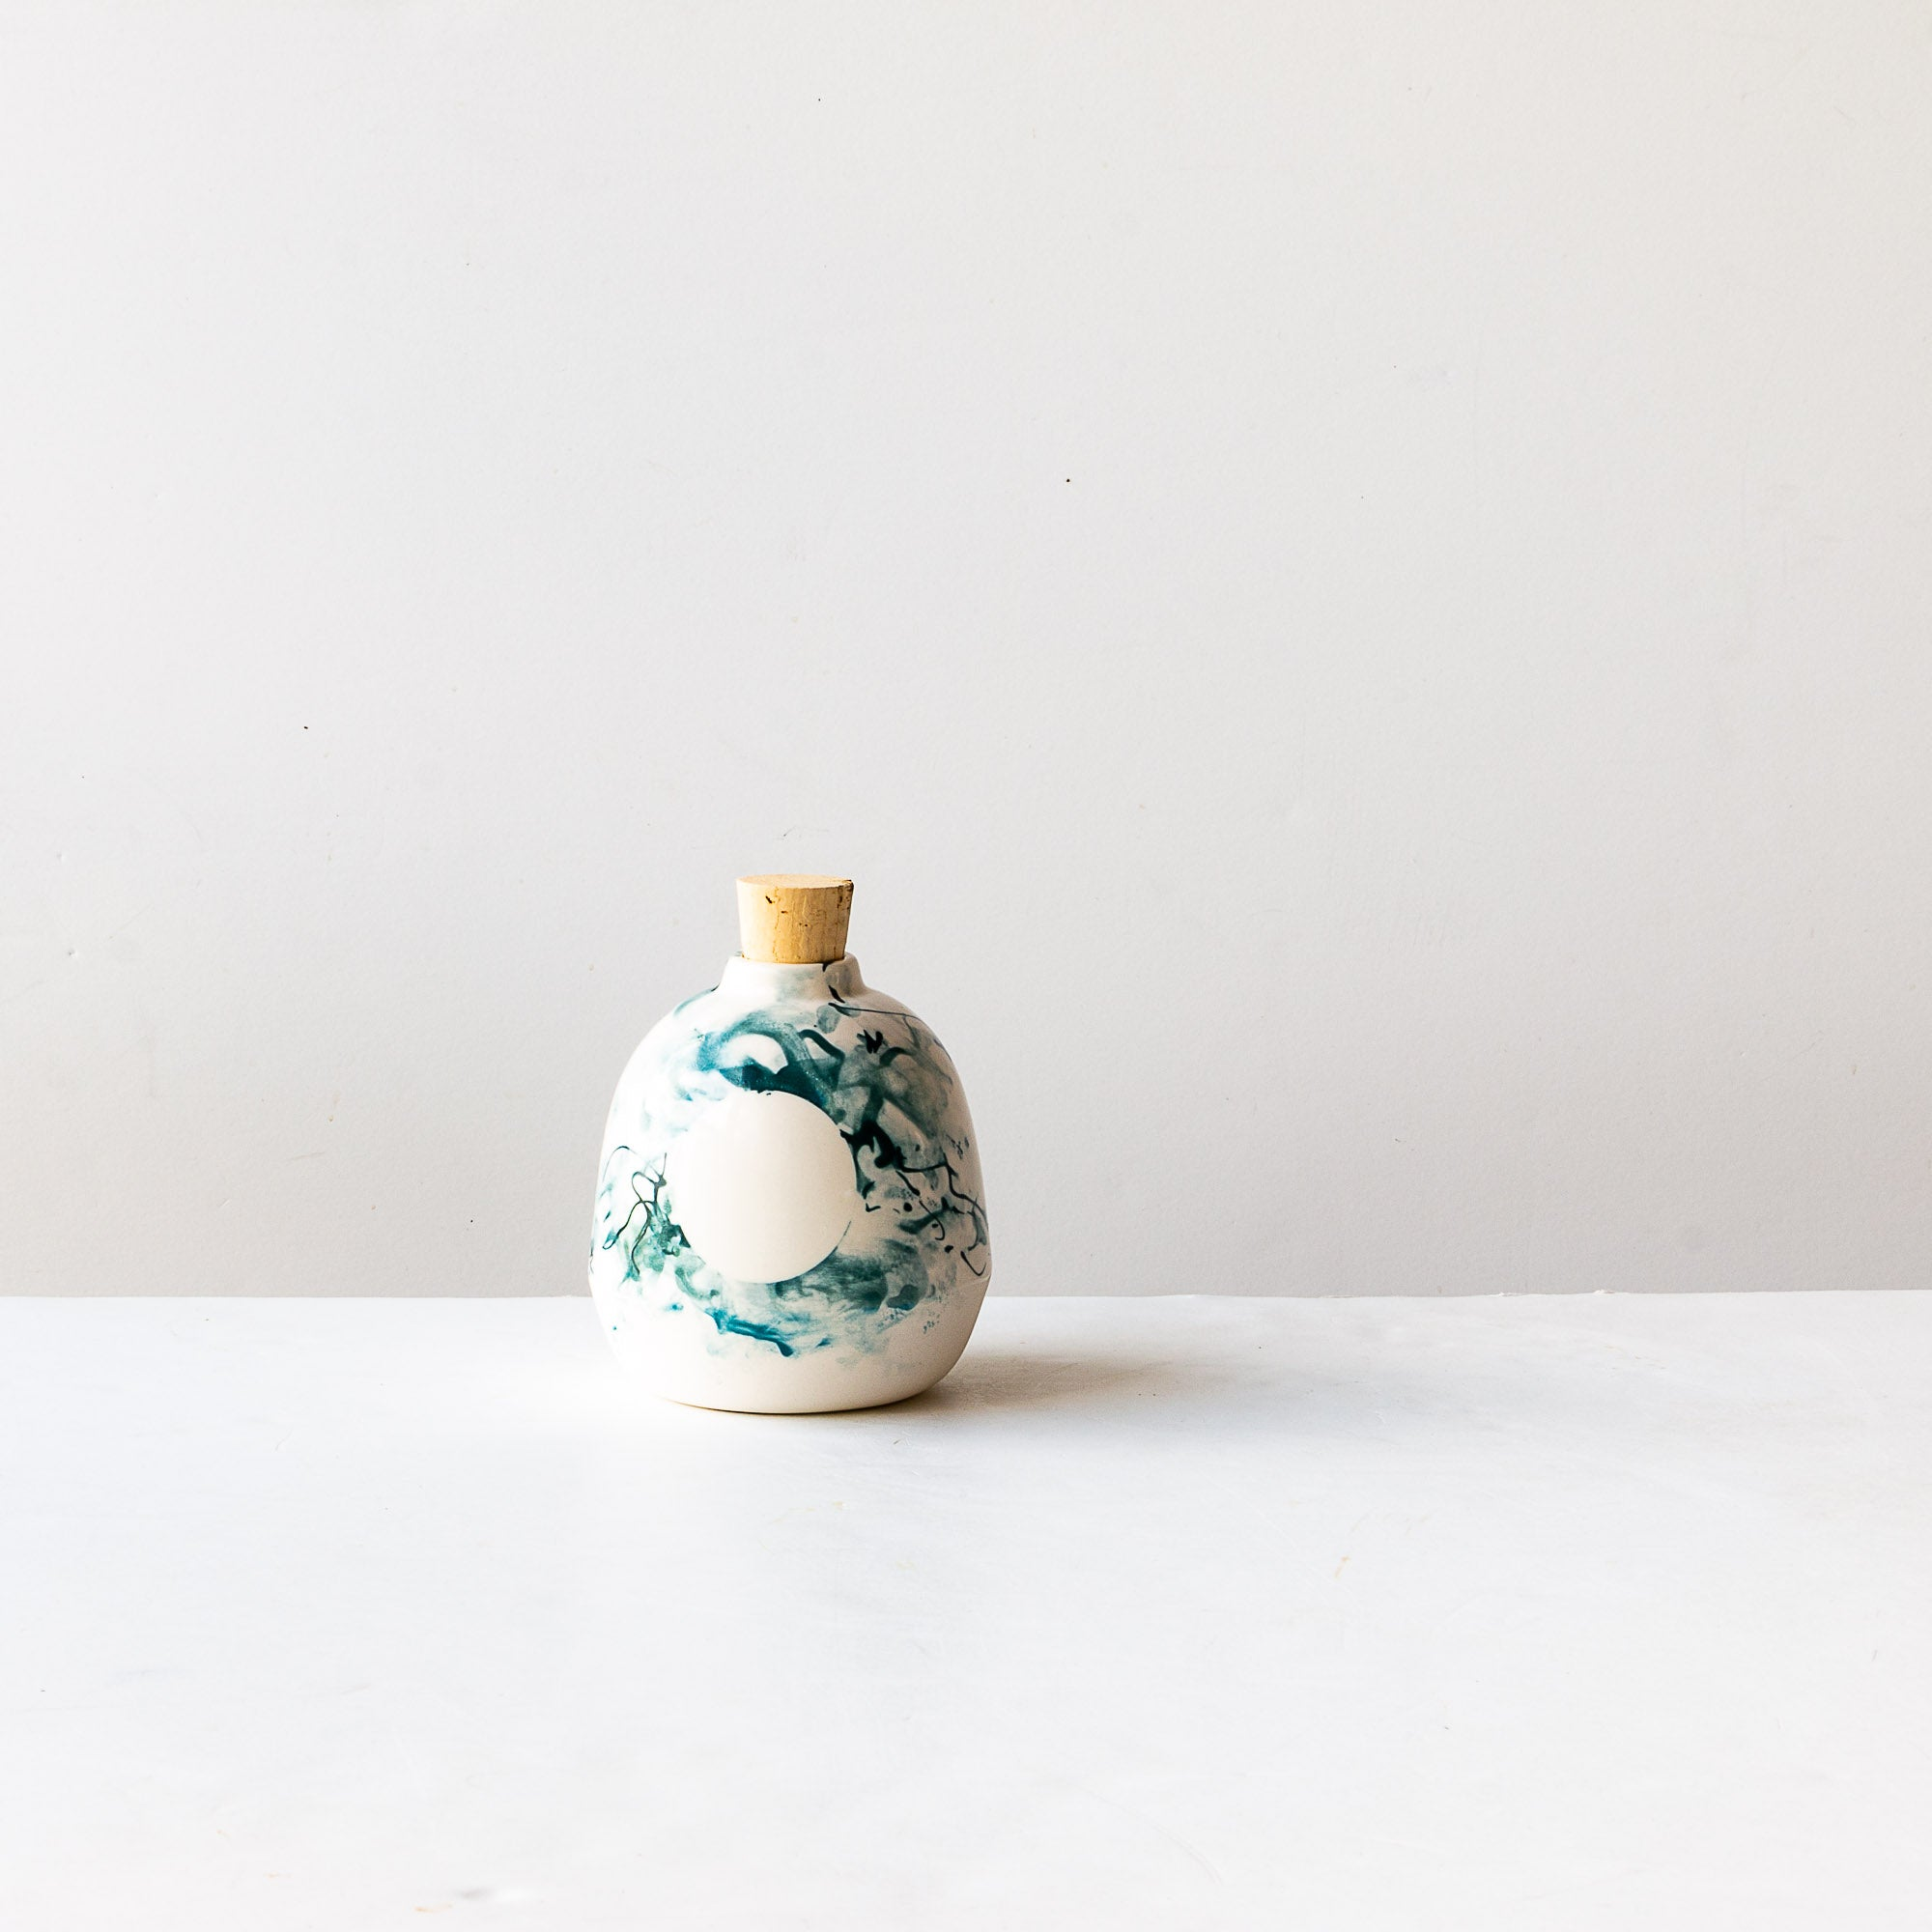 Front View - Handmade Mini Porcelain Vase With Cork - Sold by Chic & Basta